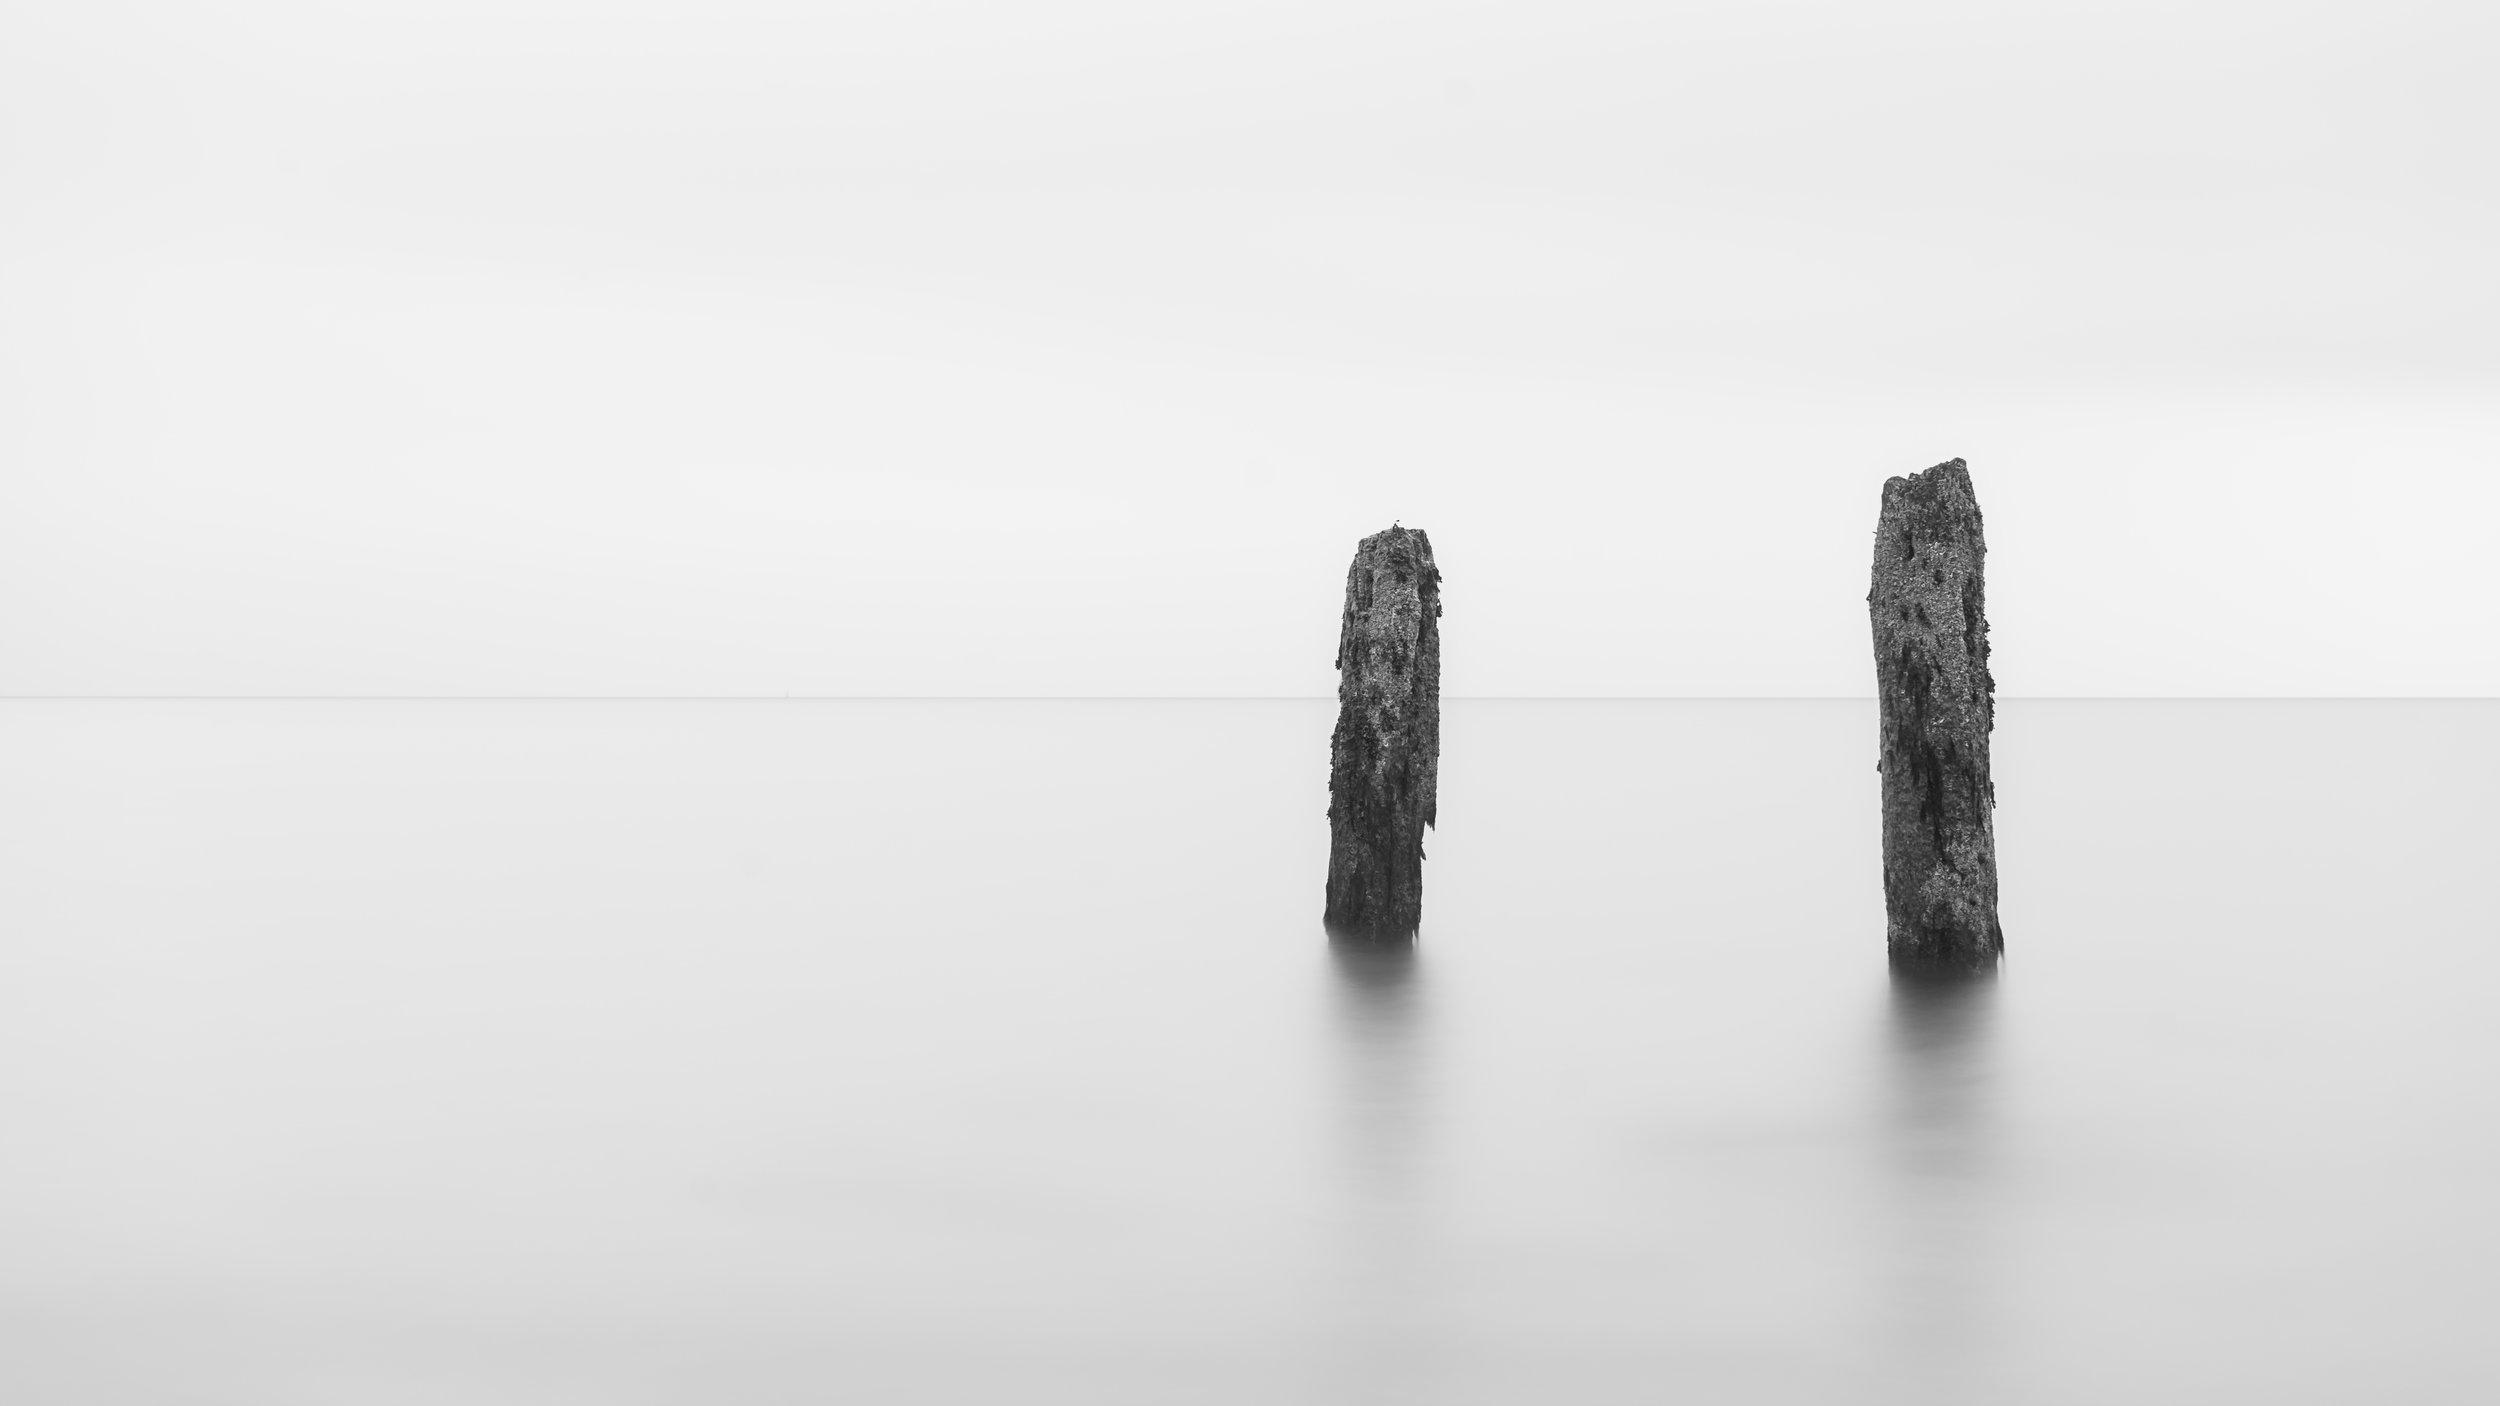 'The Tension in Simplicity'